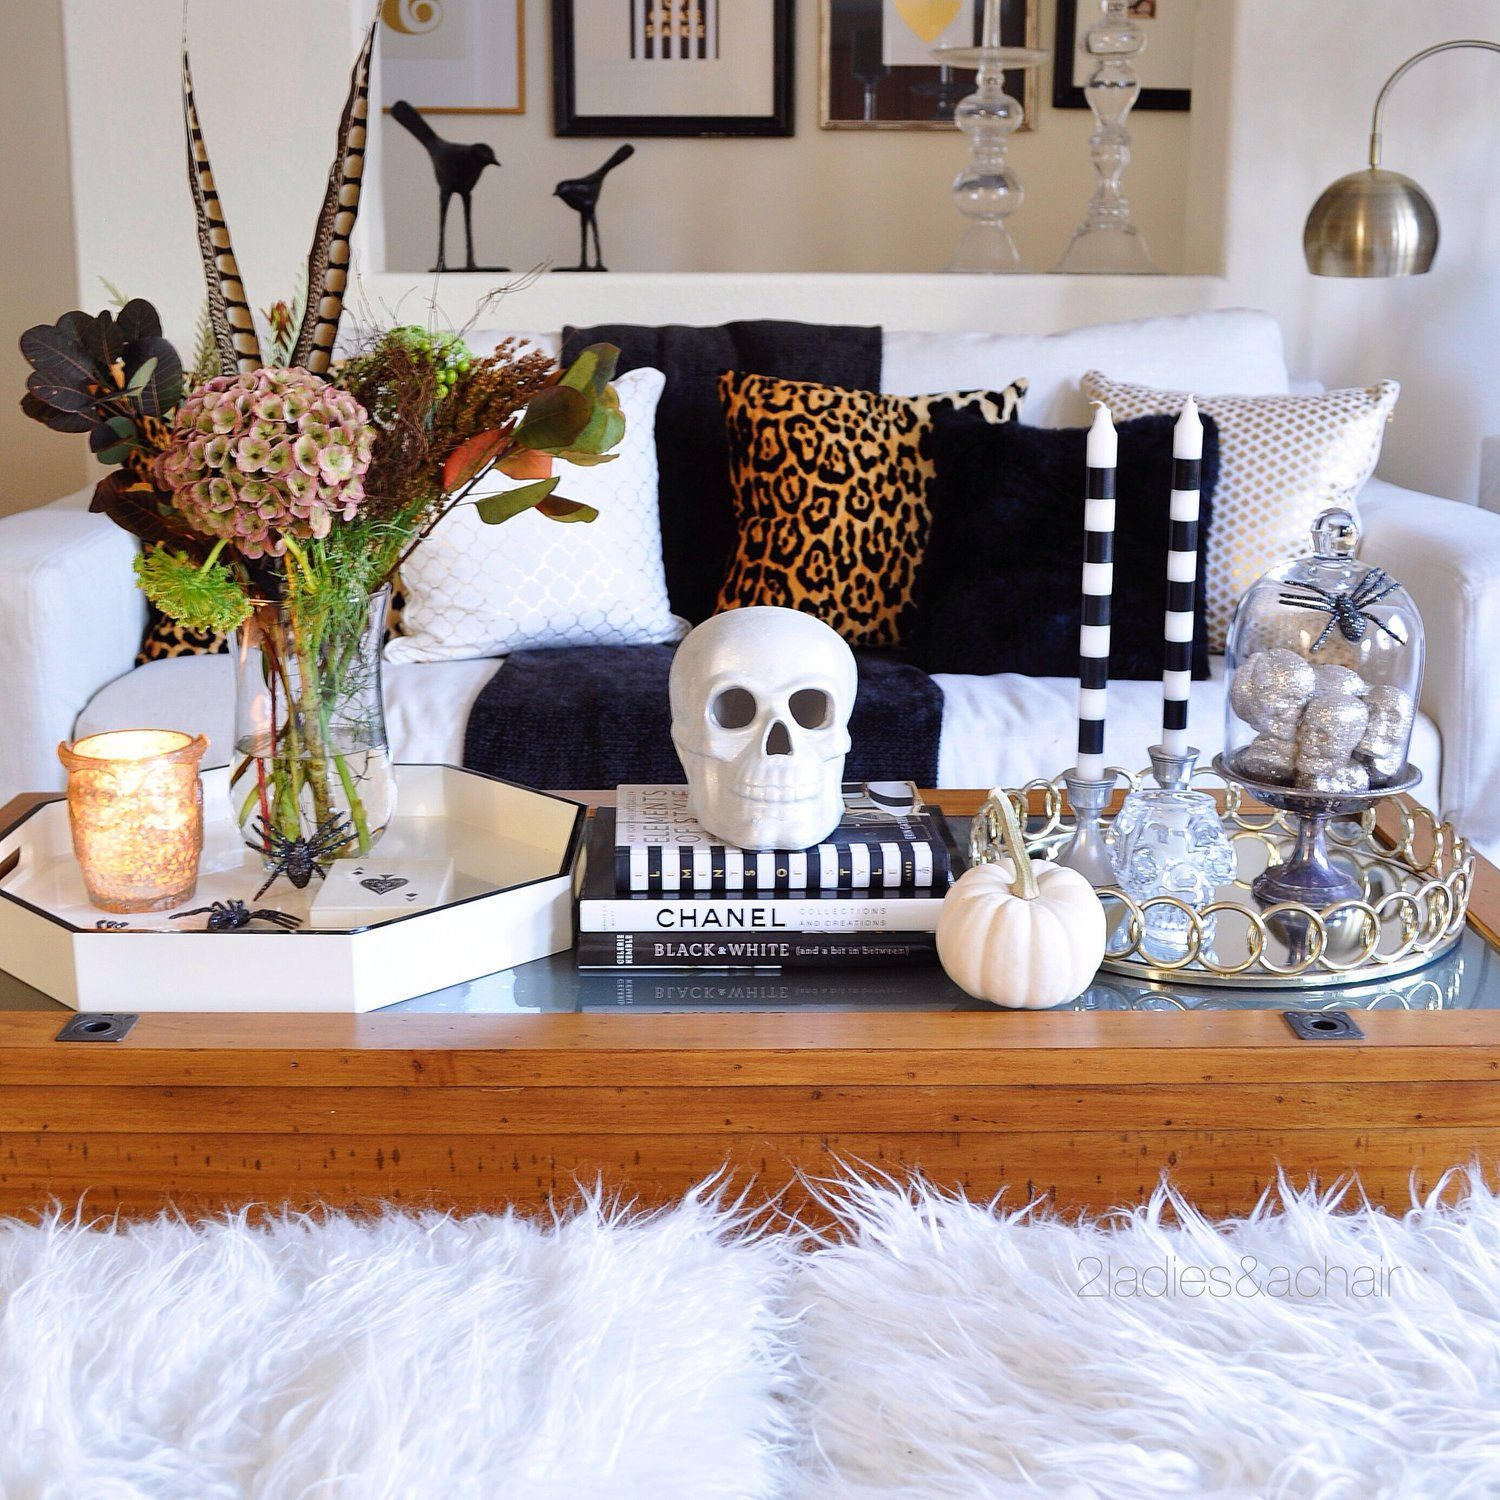 Halloween Black And White Coffee Table Decor 7 Fall Coffee Table Ideas Fallcoffeetable Coffeetabledecor Lighta Halloween Living Room Decor Fall Coffee Table